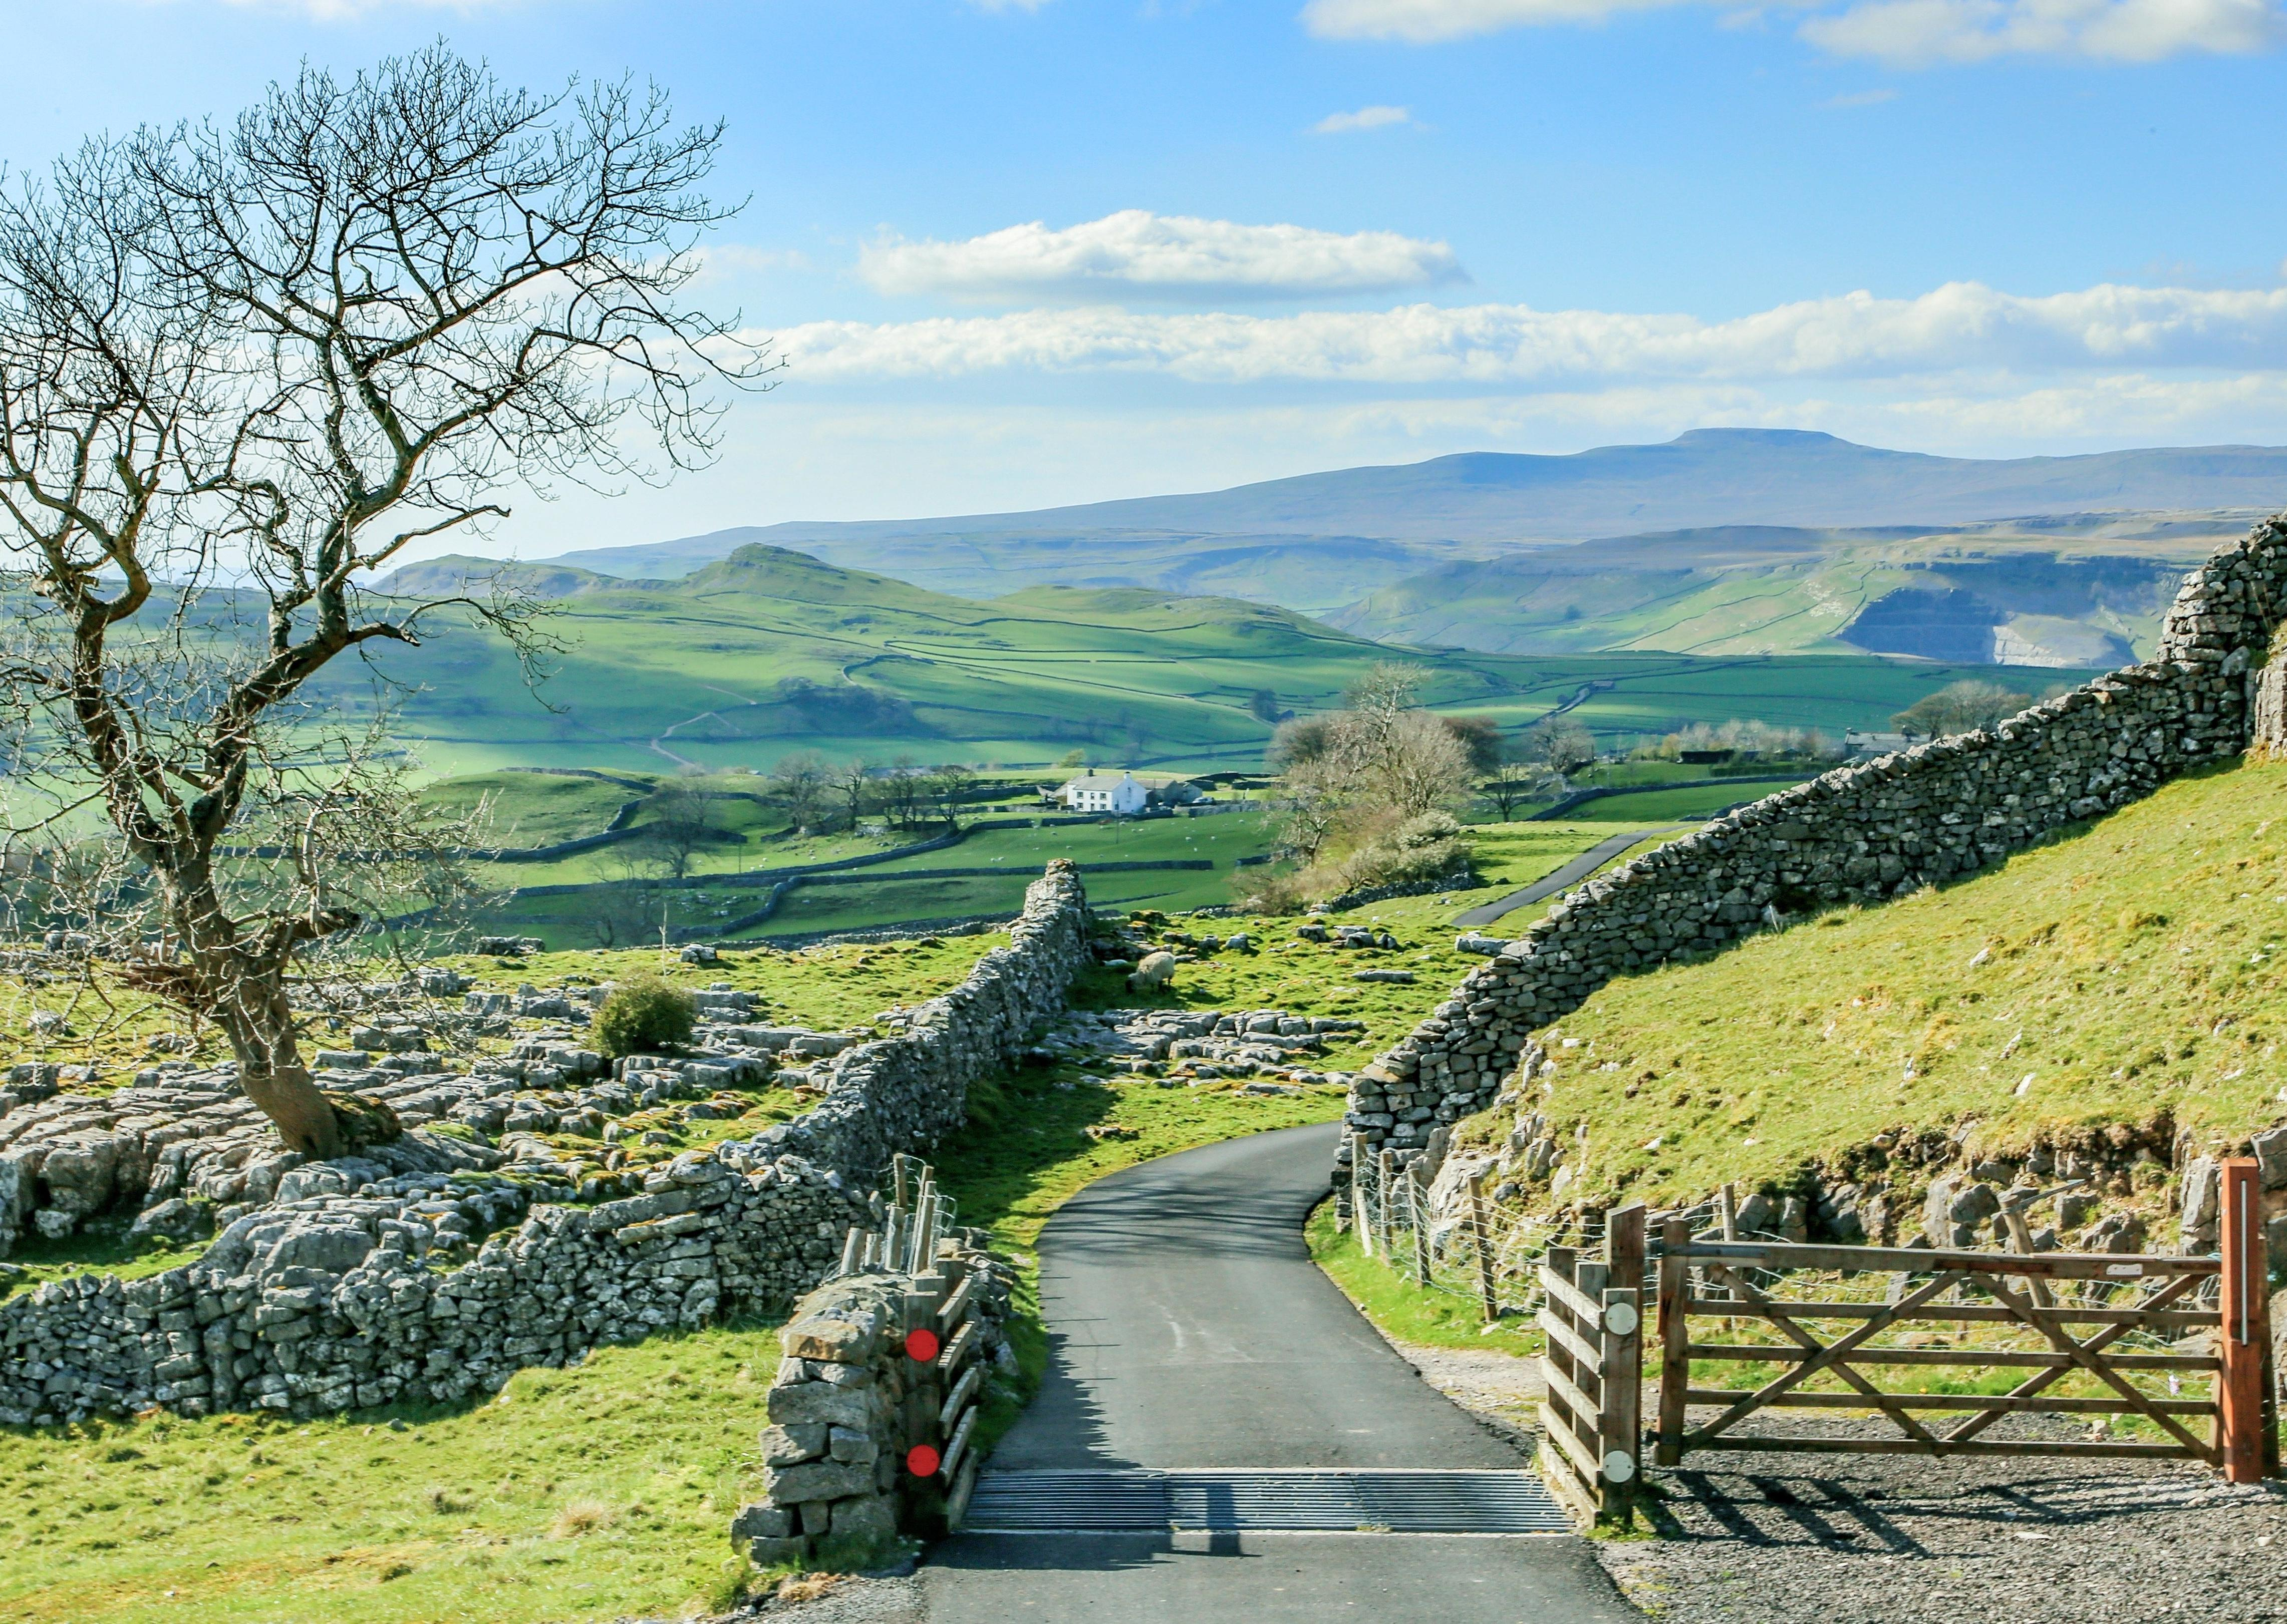 Why we must support Yorkshire's countryside to aid economic recovery - Dorothy Fairburn